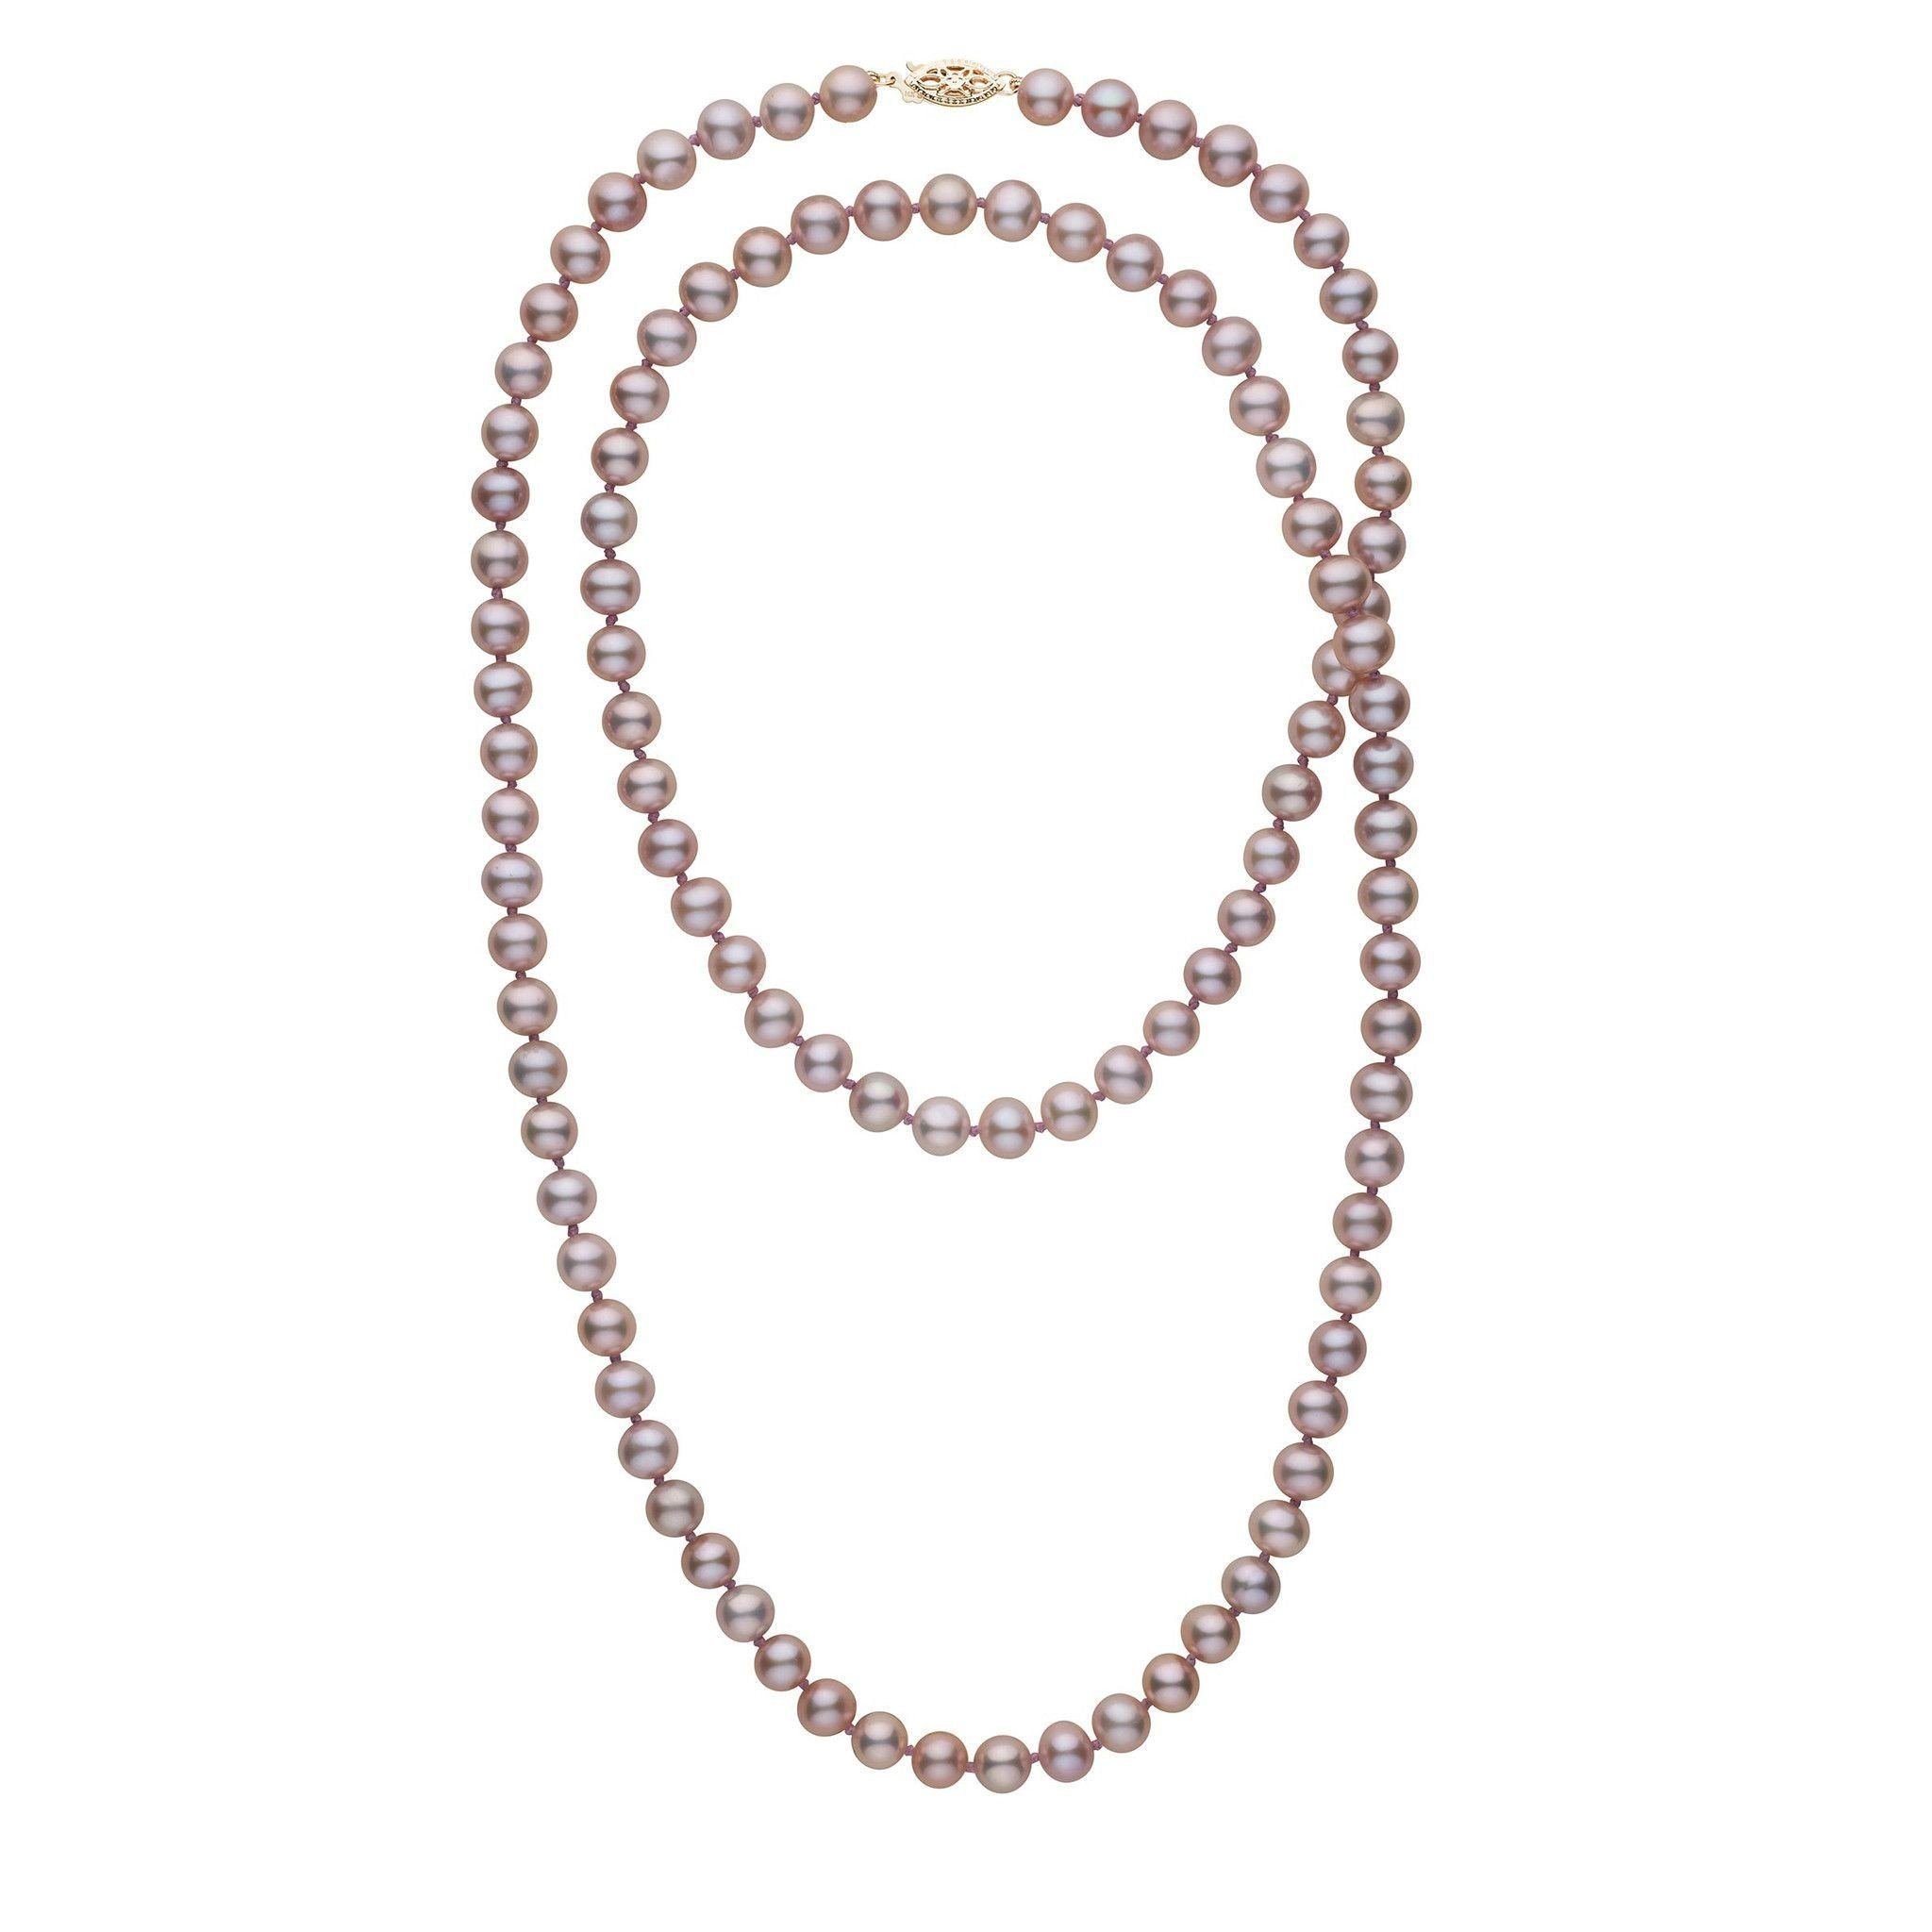 35-inch 7.5-8.0 mm AA+ Lavender Freshwater Pearl Necklace